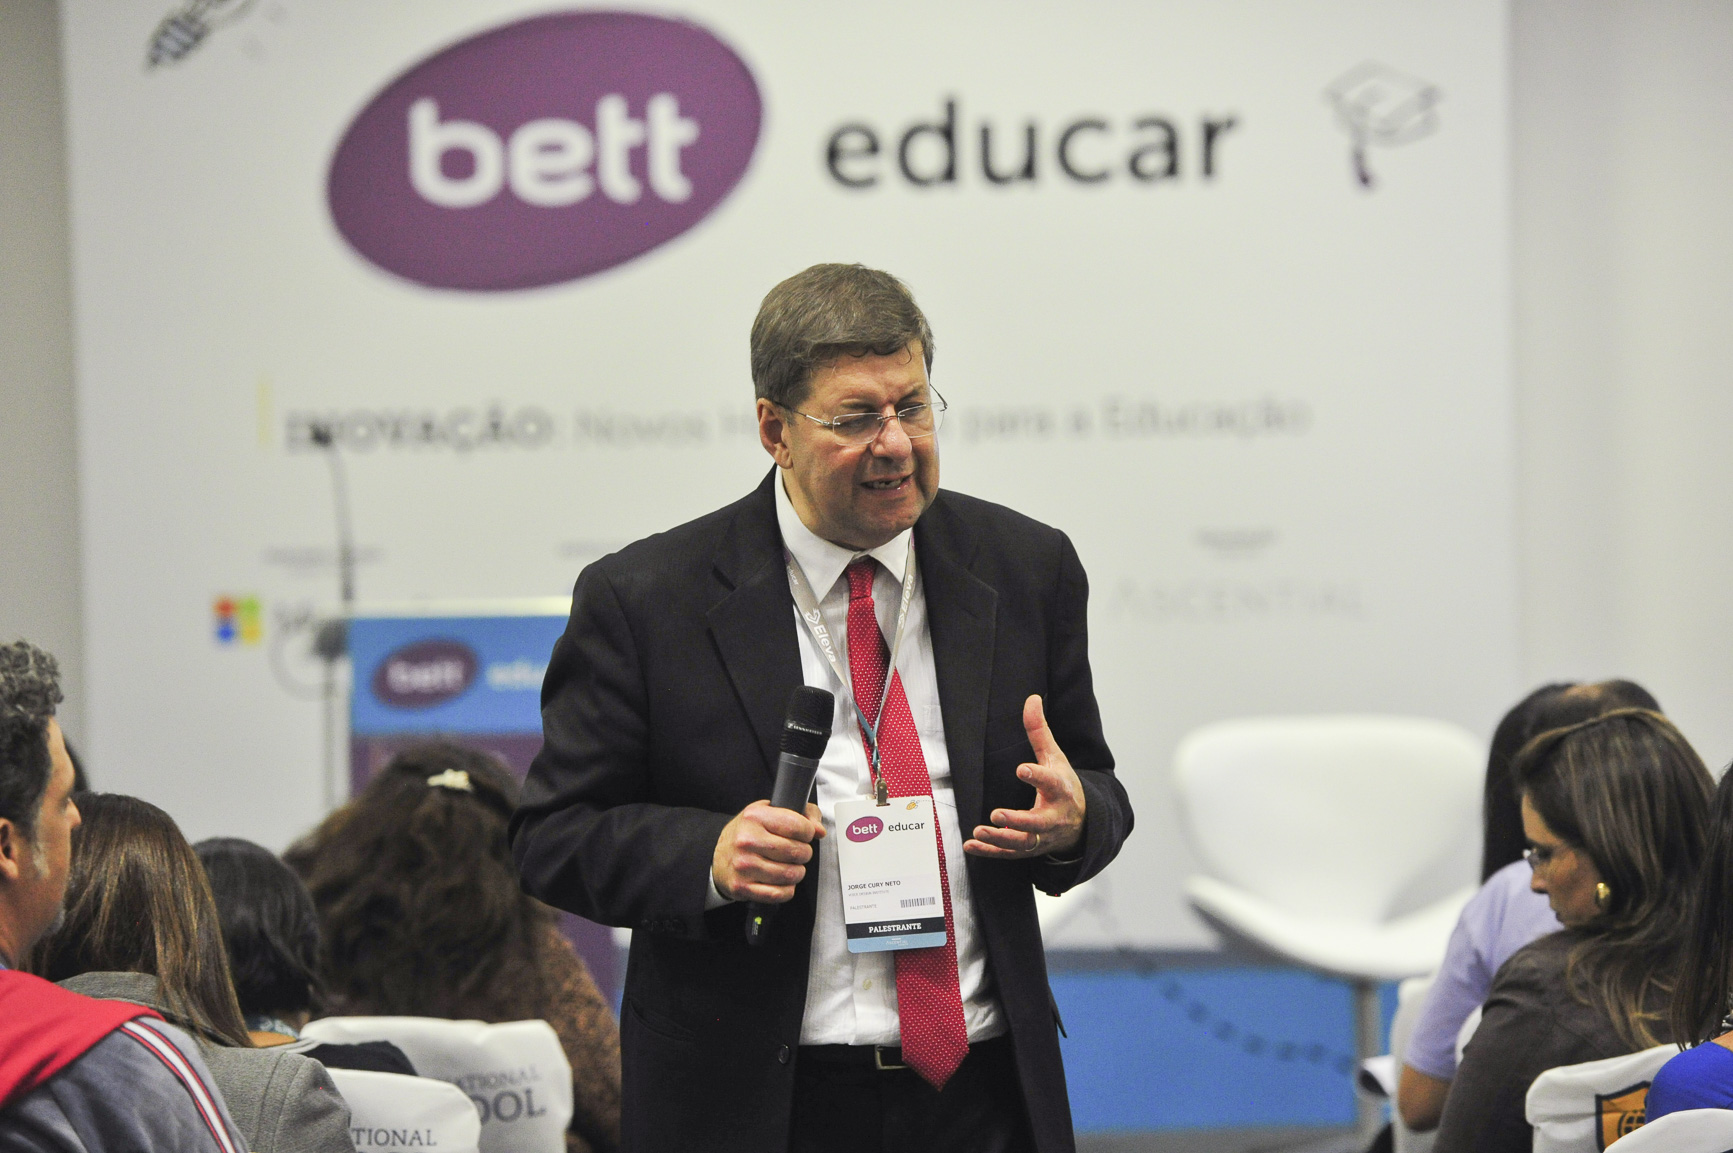 Flagrantes do Voice Design para Educadores do Bett Educar 2017